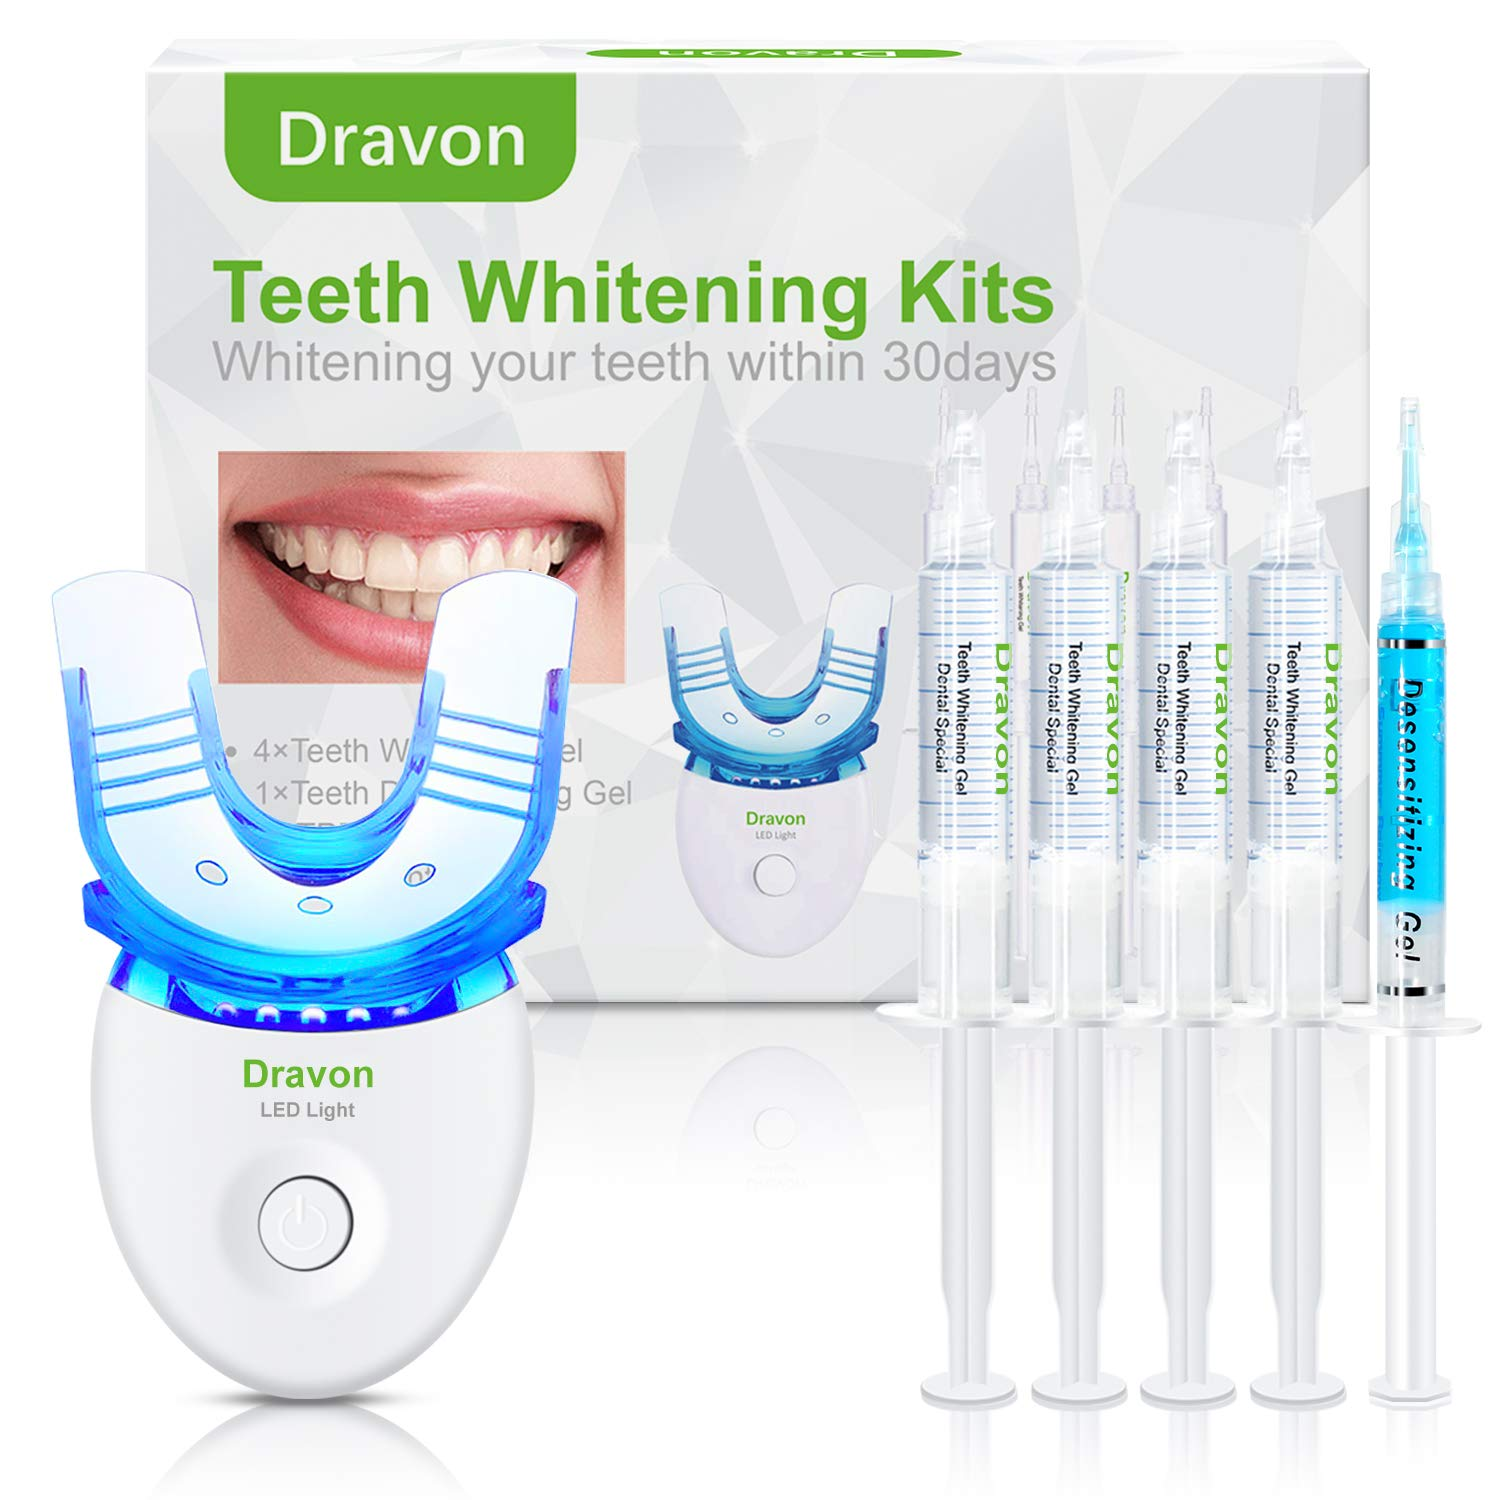 Teeth Whitening, Teeth Whitener, Bright Teeth Whitening Kit, 4 Syringes of 5ml Professional 35% Carbamide Peroxide Tooth Whitening Gel,LED Light, Mouth Tray